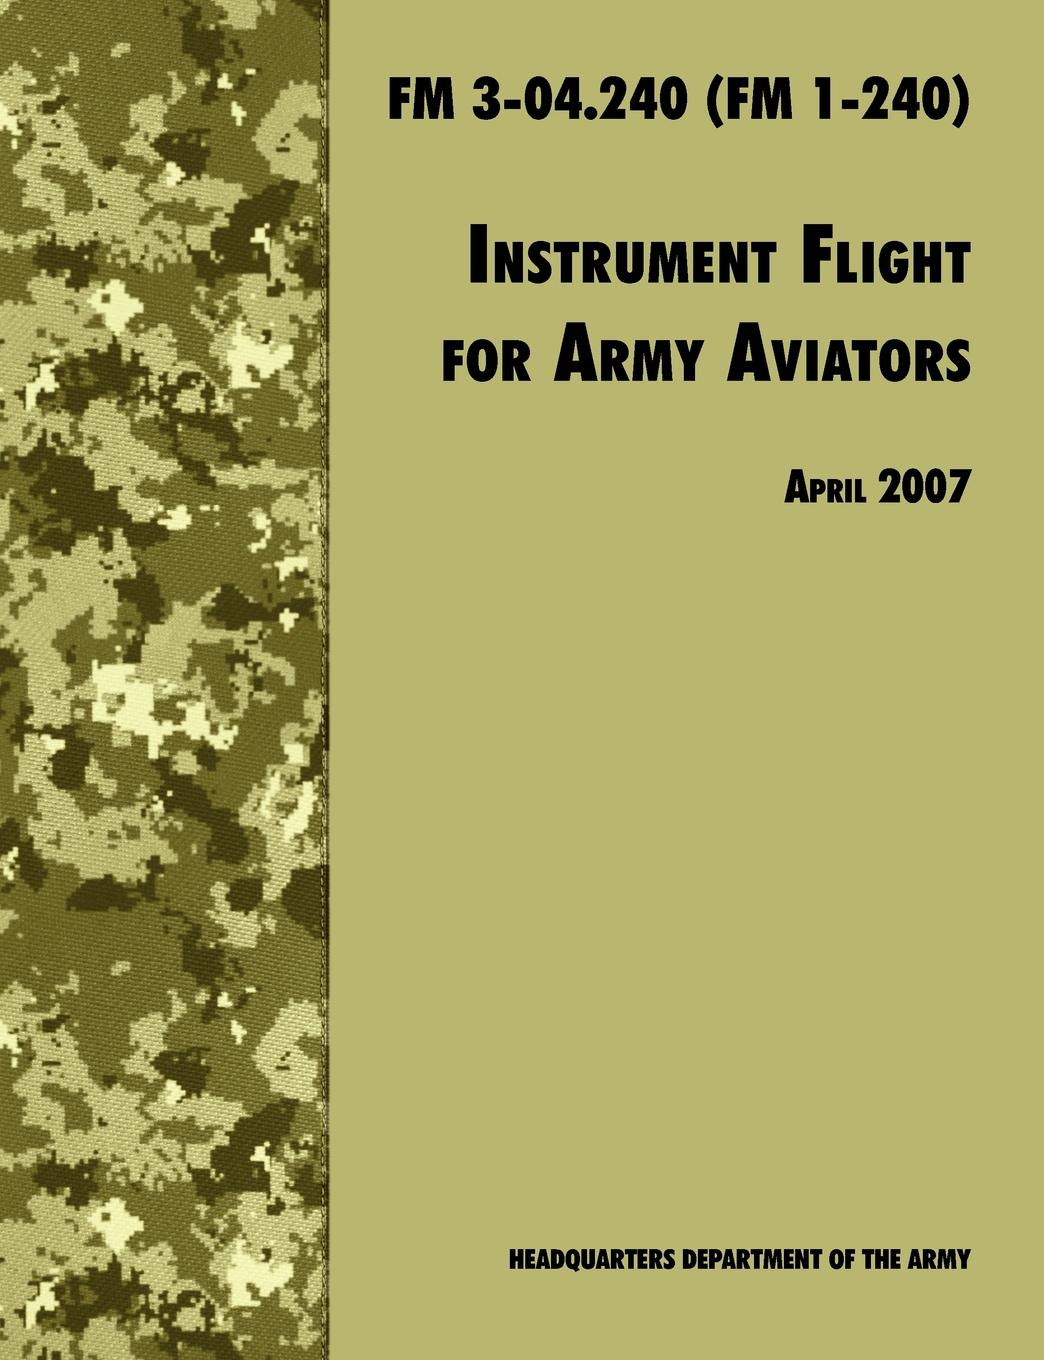 Army Training and Doctrine Command, U.S. Department of the Army Instrument Flight for Army Aviators. The Official U.S. Army Field Manual FM 3-04.240 (FM 1-240), April 2007 revision